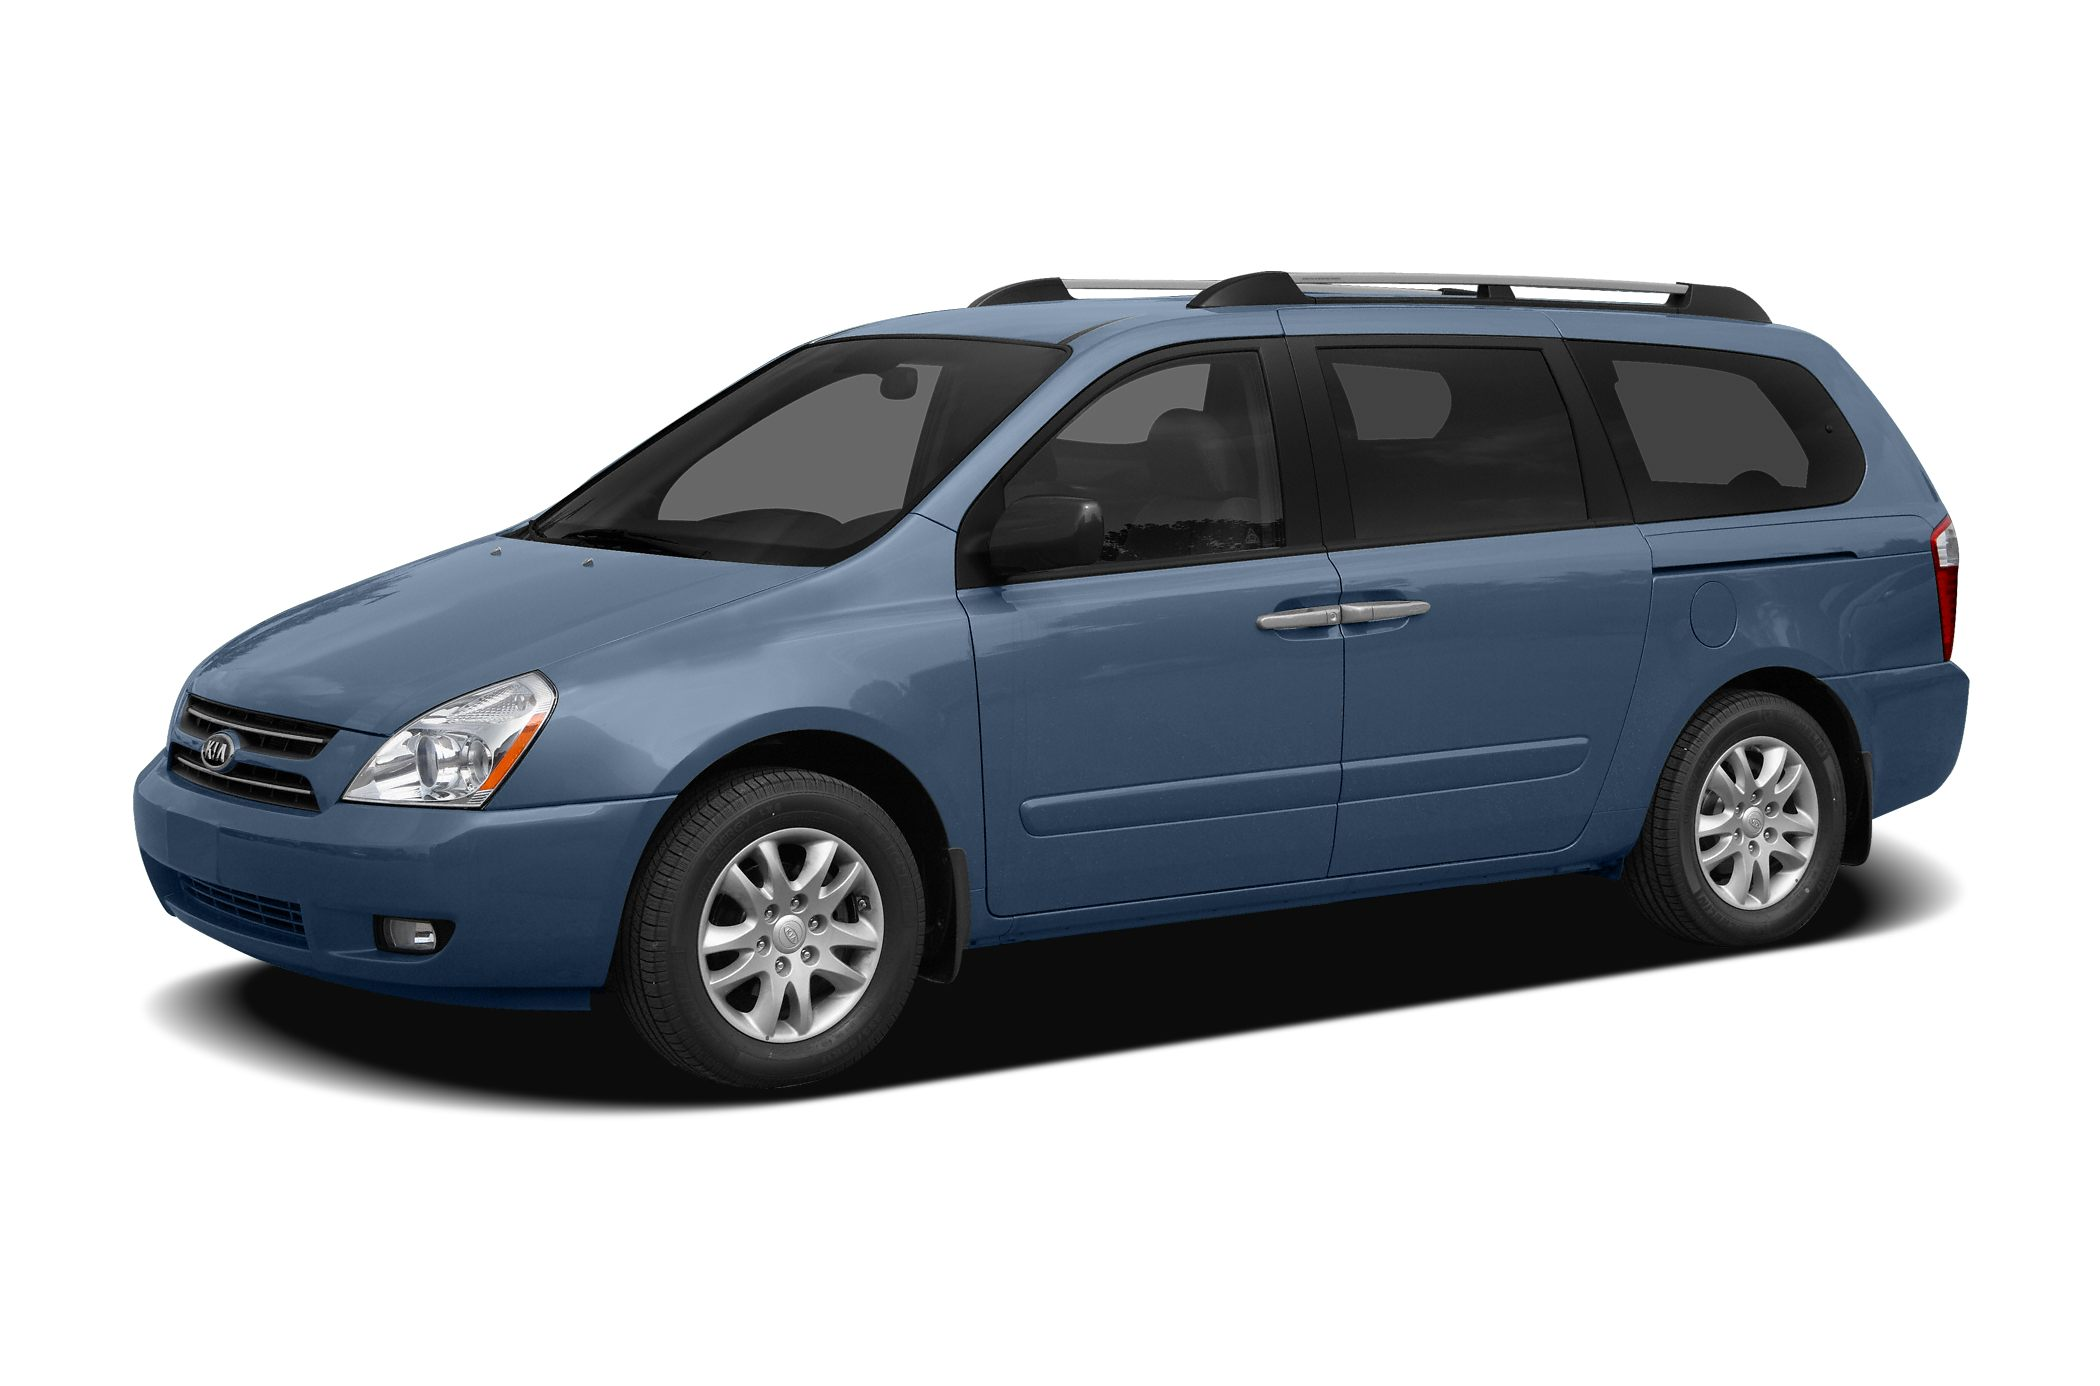 2008 Kia Sedona LX Snatch a bargain on this 2008 Kia Sedona LX while we have it Roomy but easy to